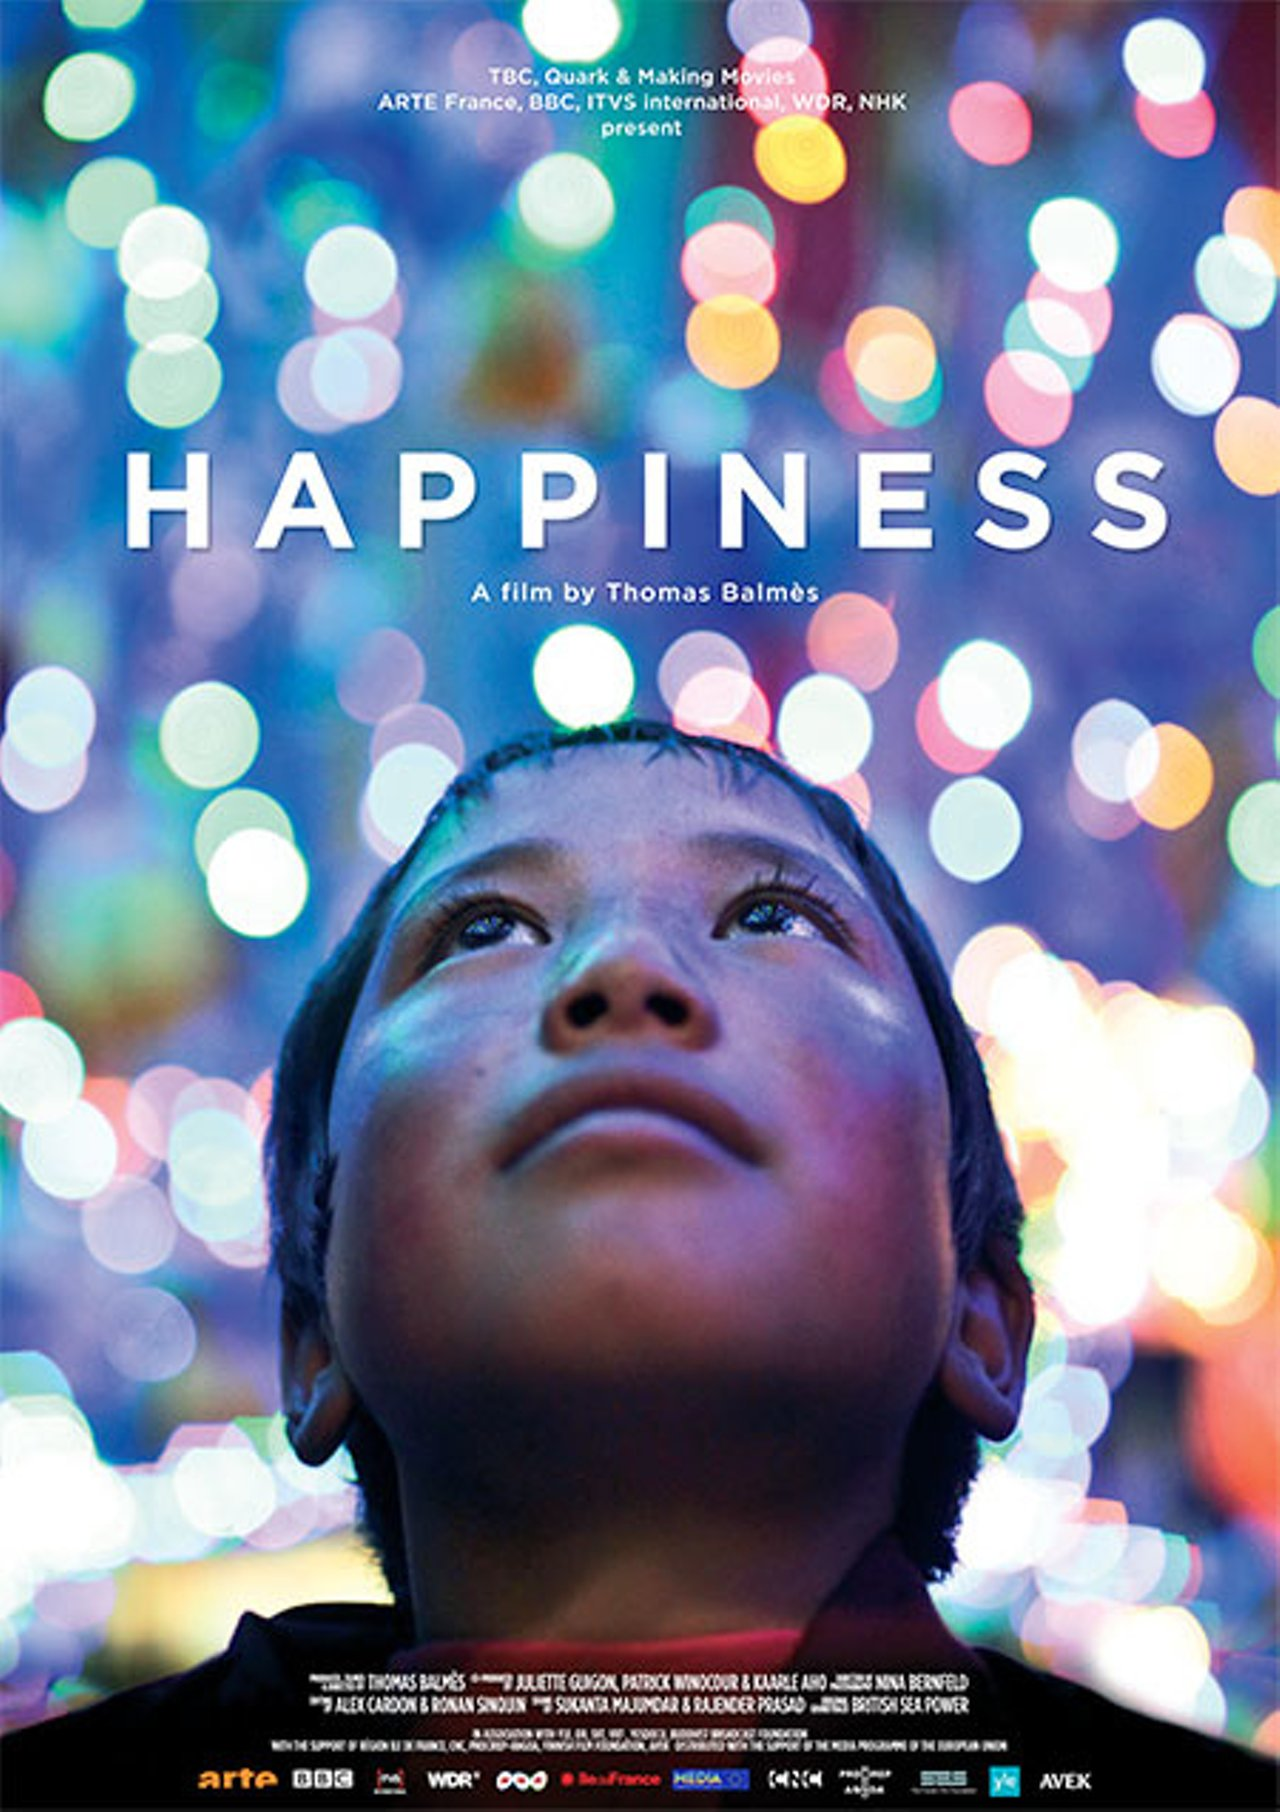 Happiness (Thomas Balmès, 2014)